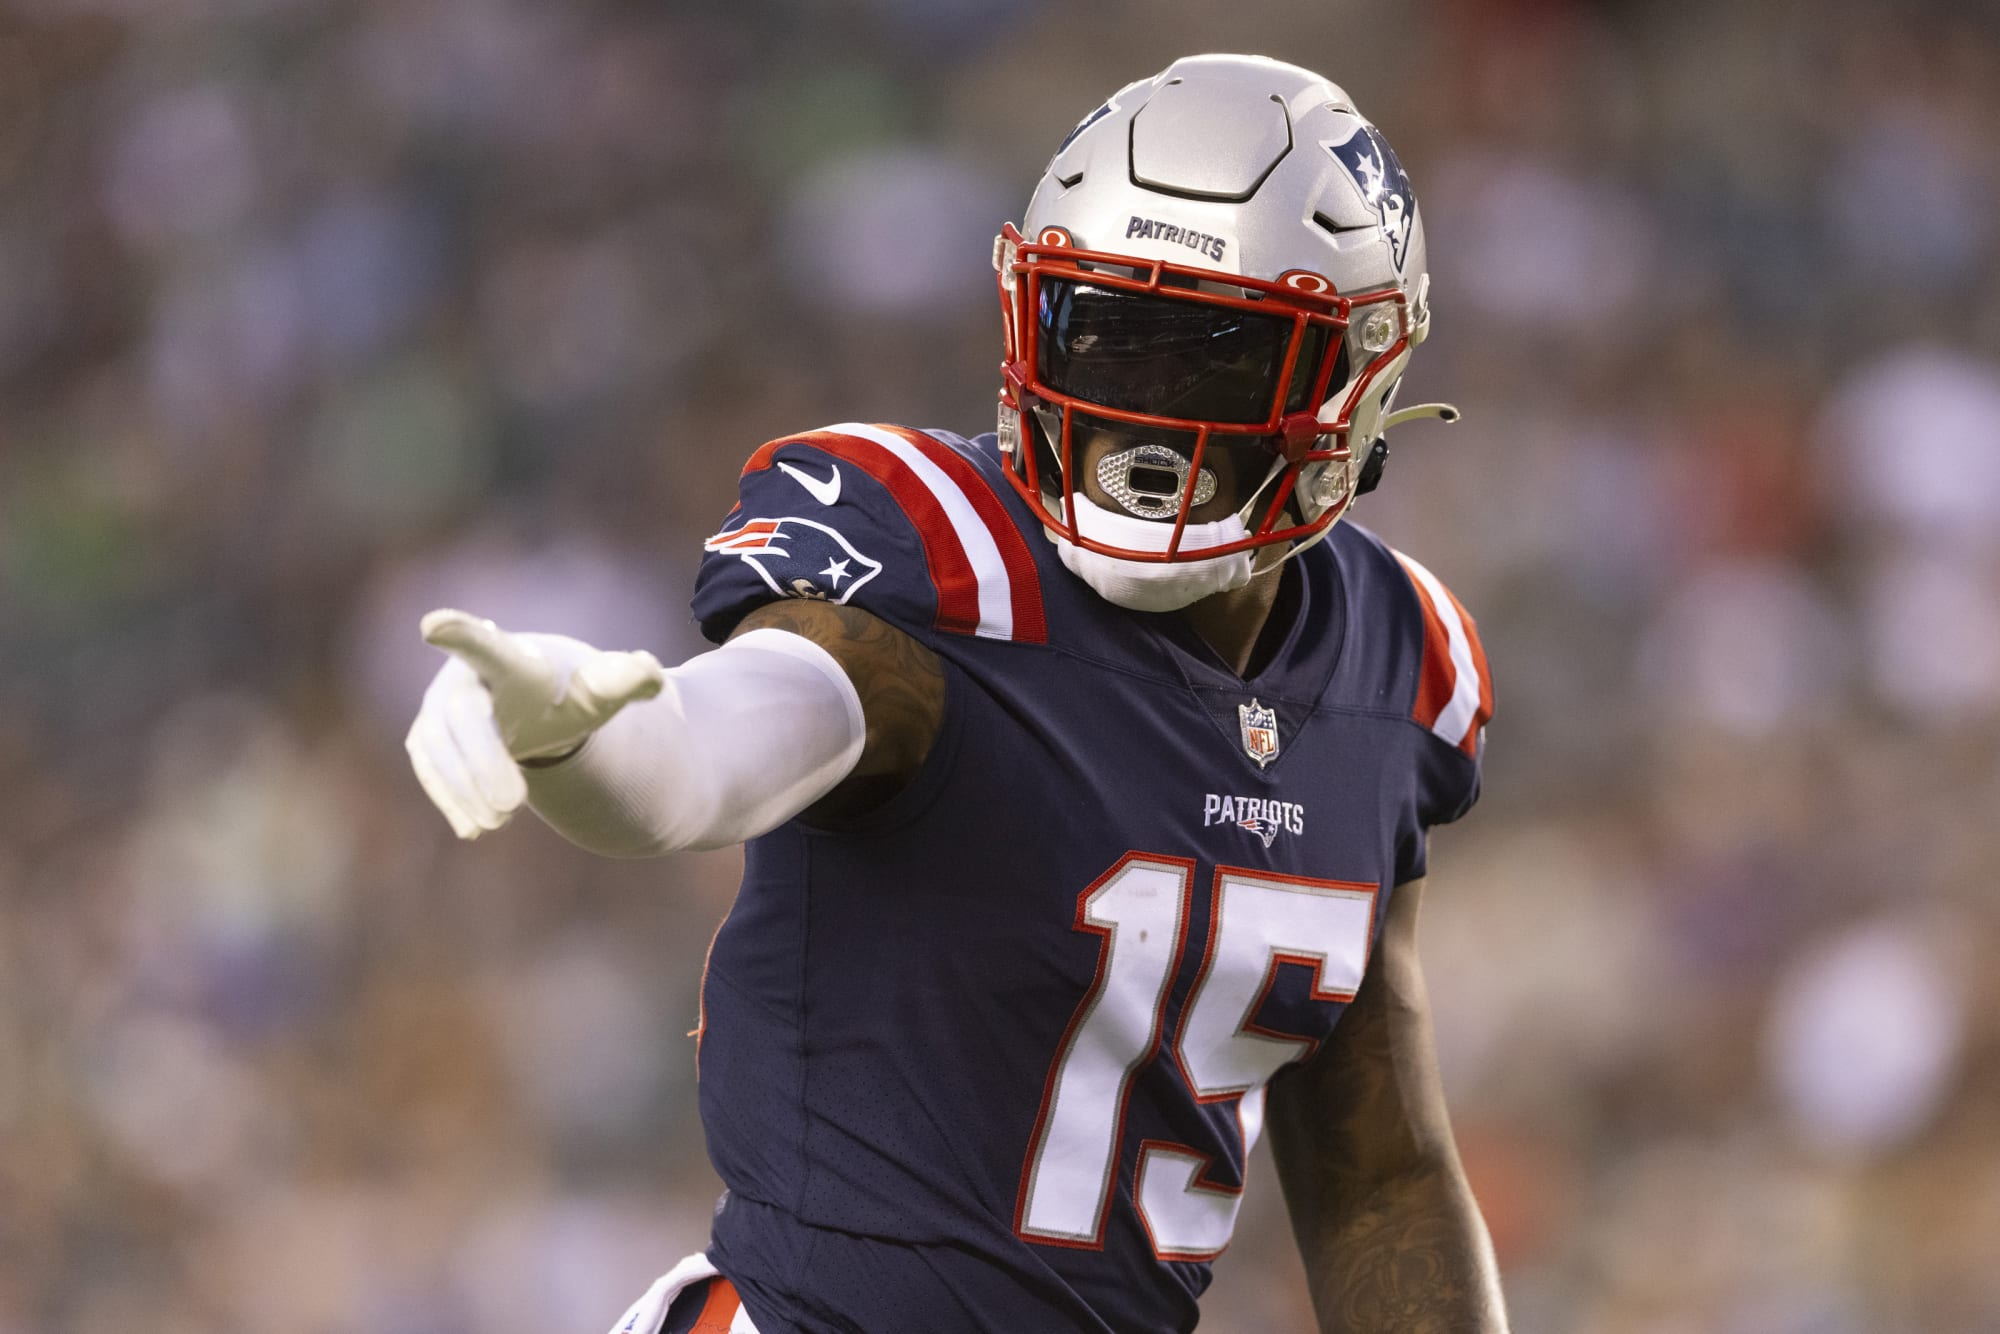 Patriots: N'Keal Harry's injury could affect his future - Musket Fire